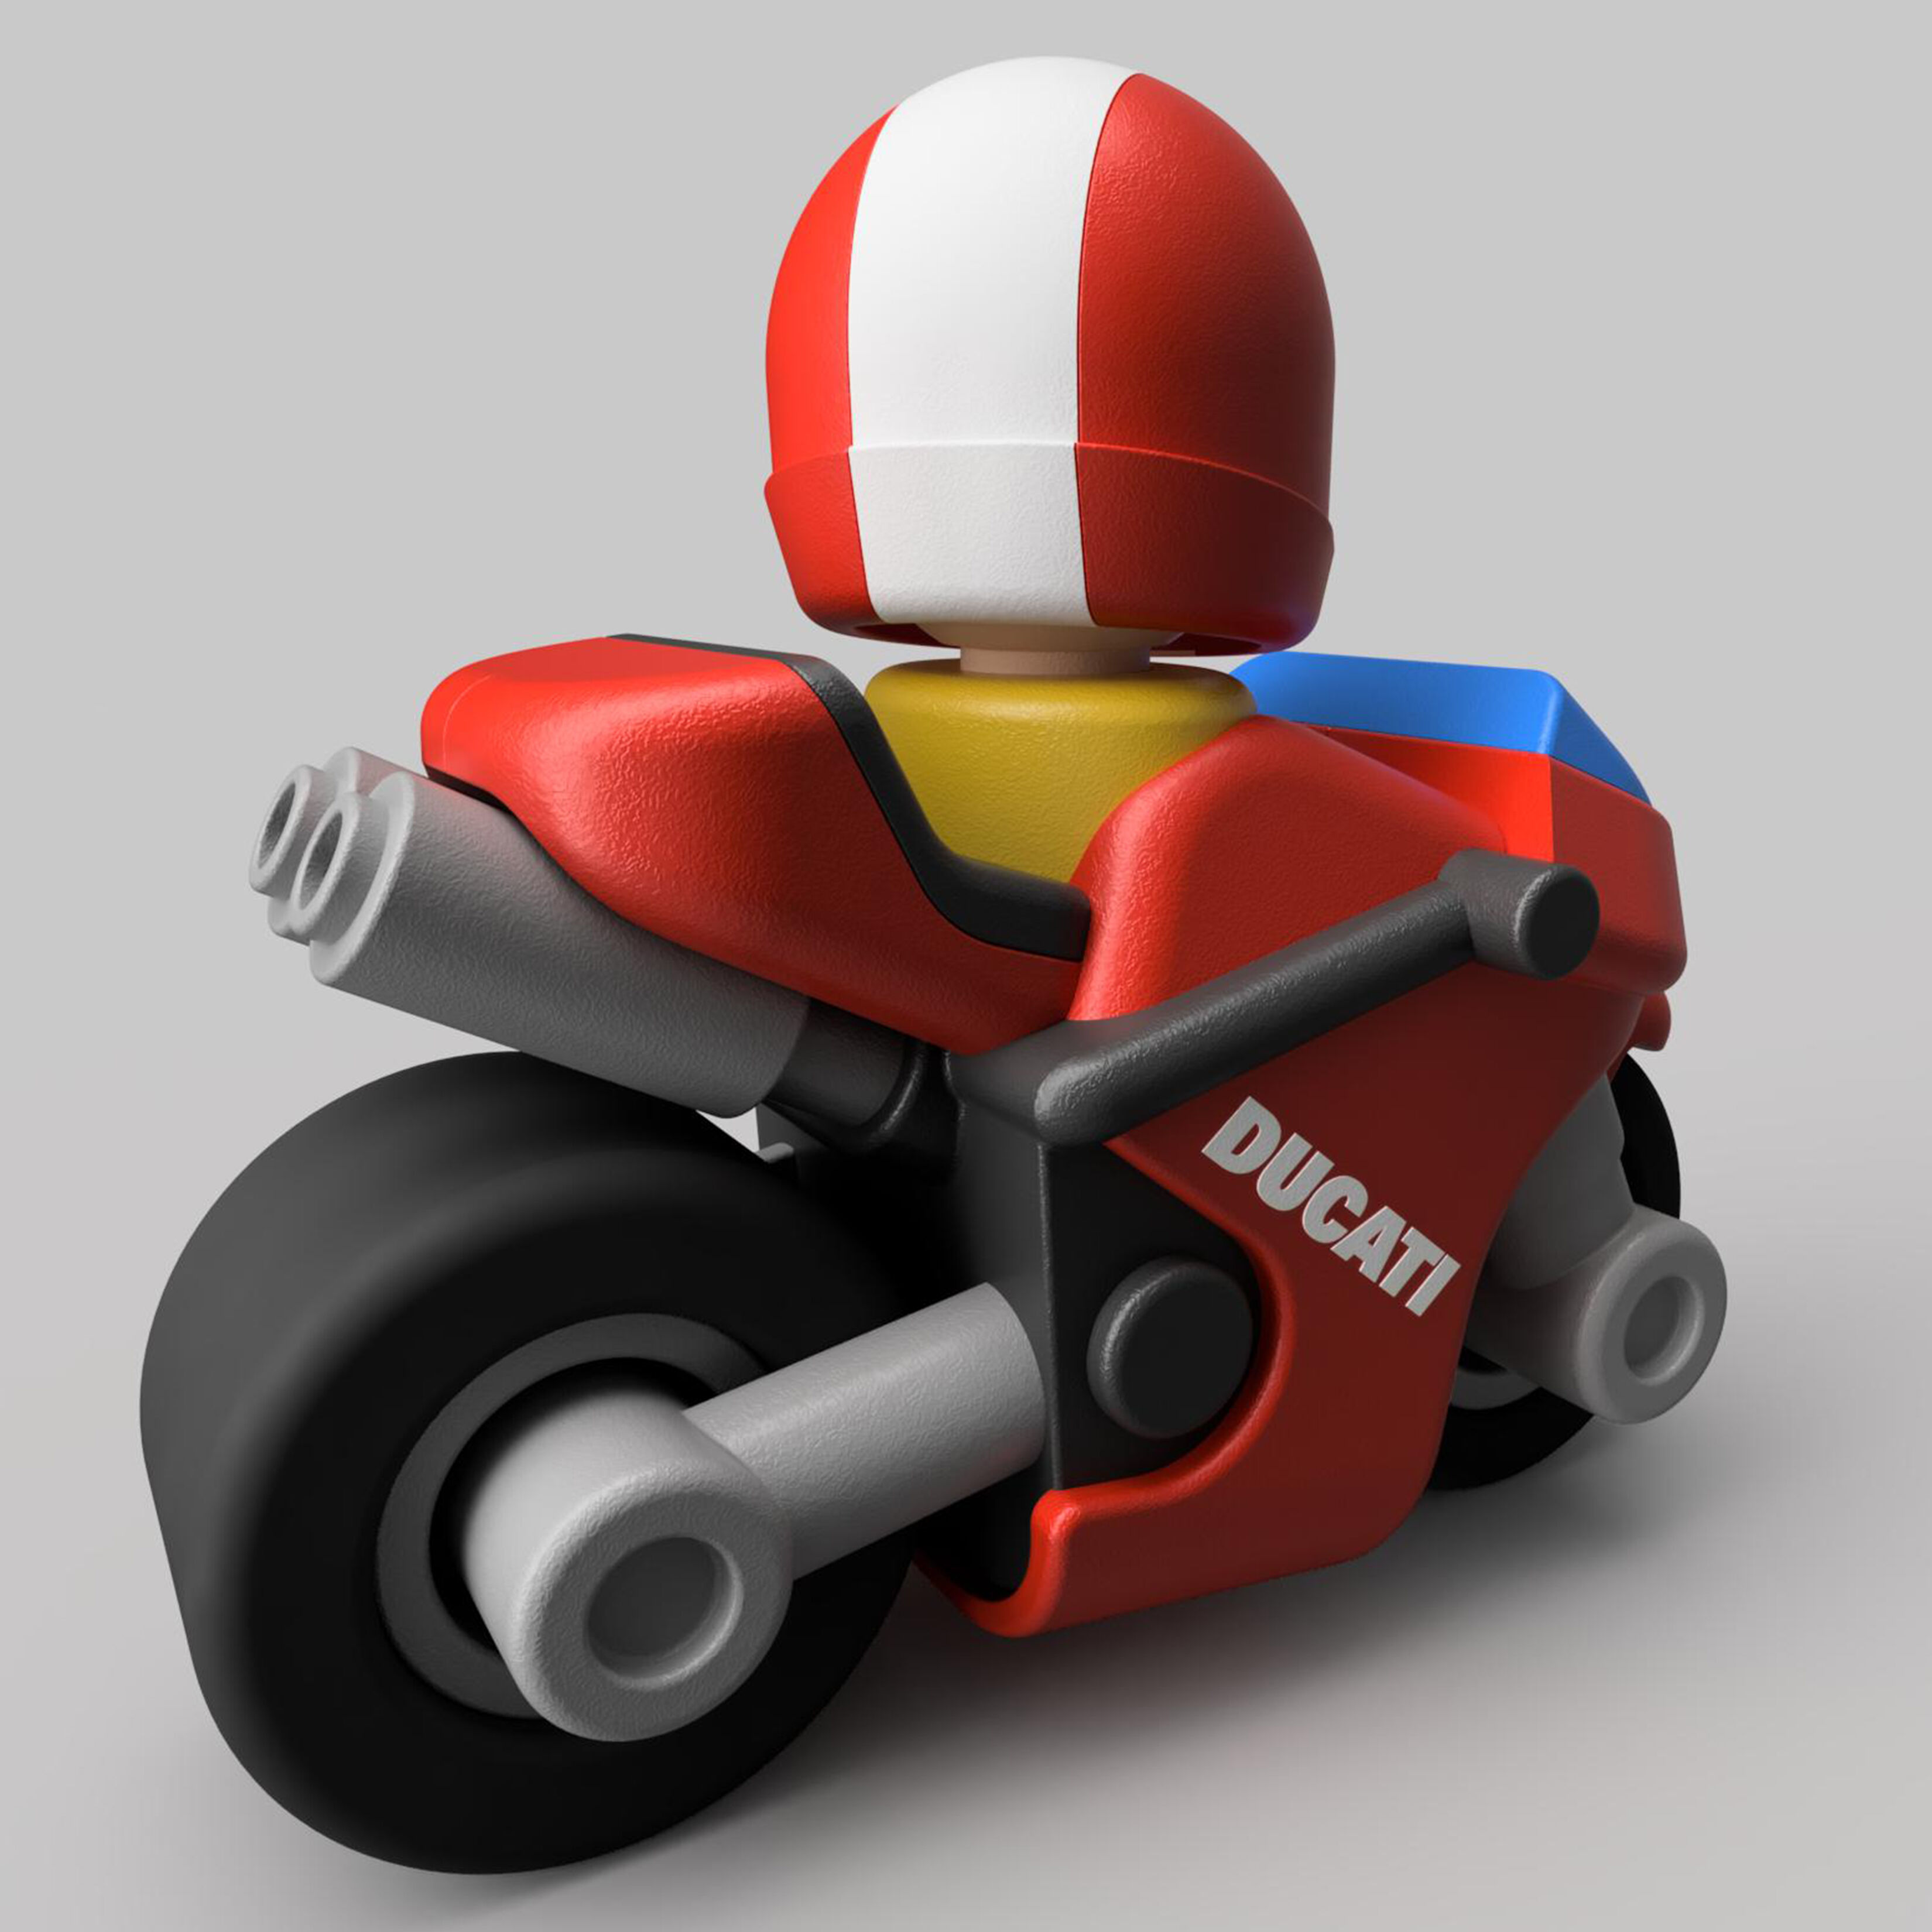 Toy-ducati-2020-jun-04-12-08-52pm-000-customizedview1349440027-3500-3500